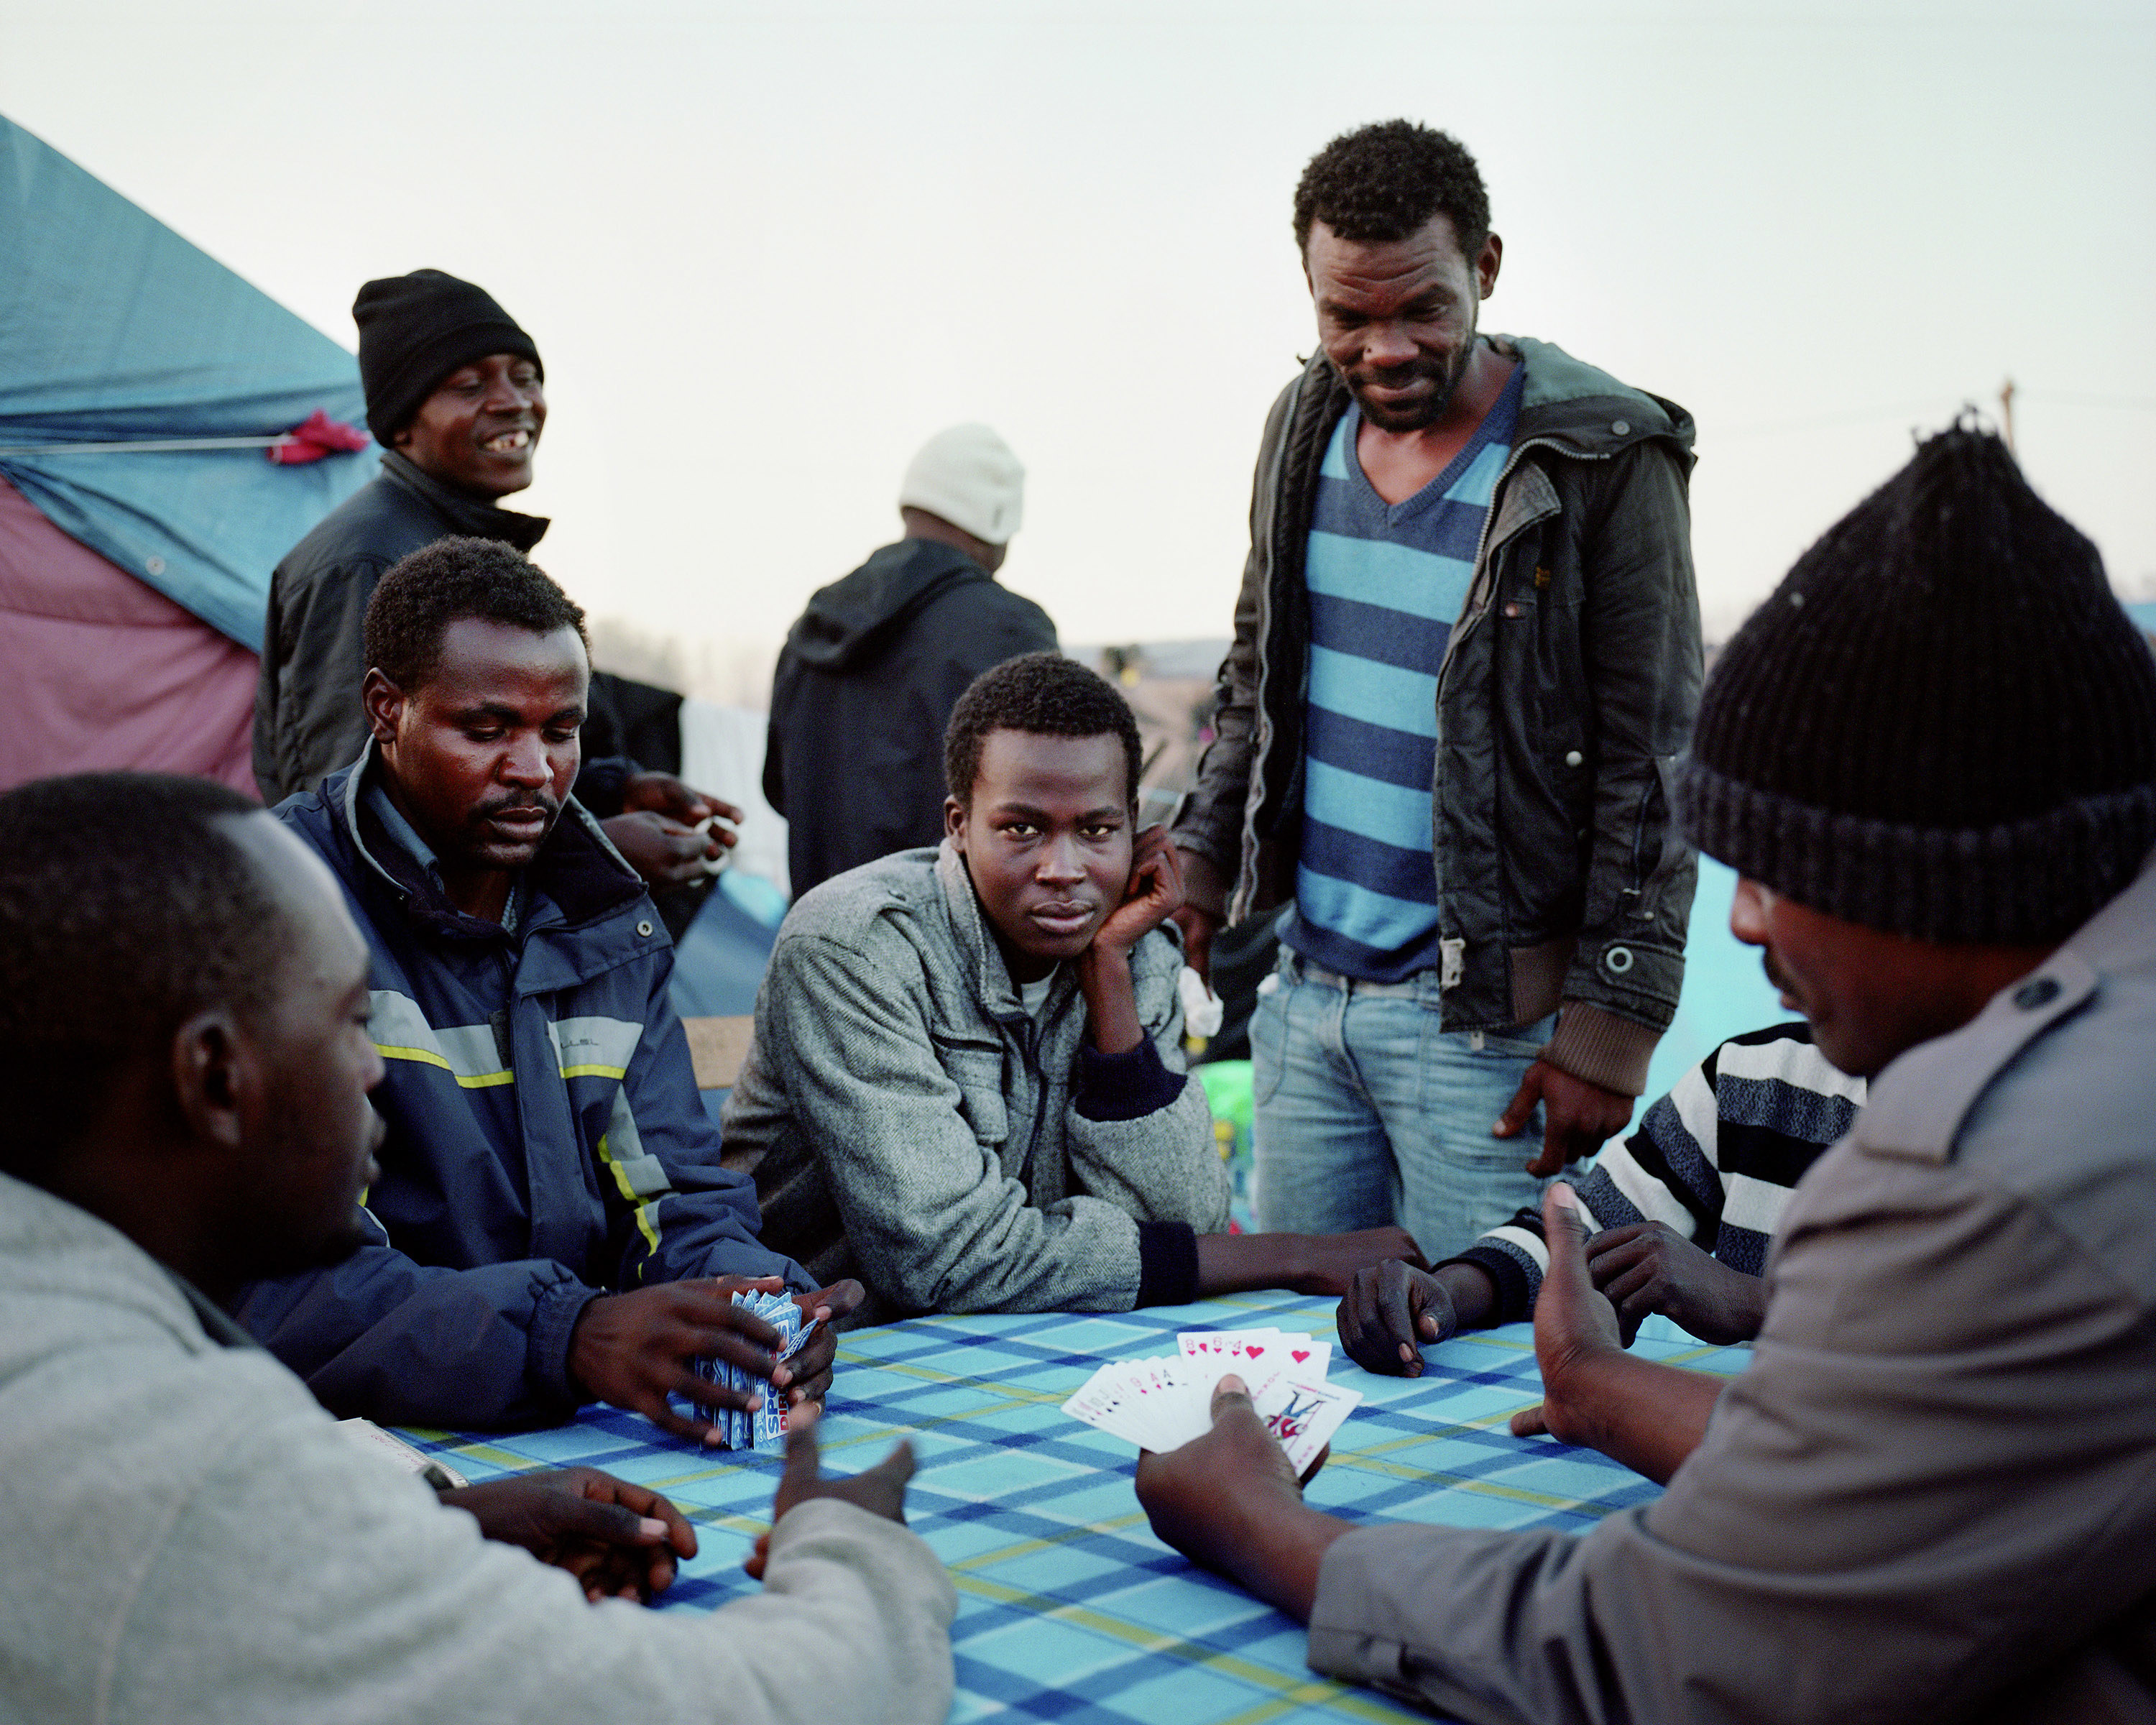 Men playing cards outside